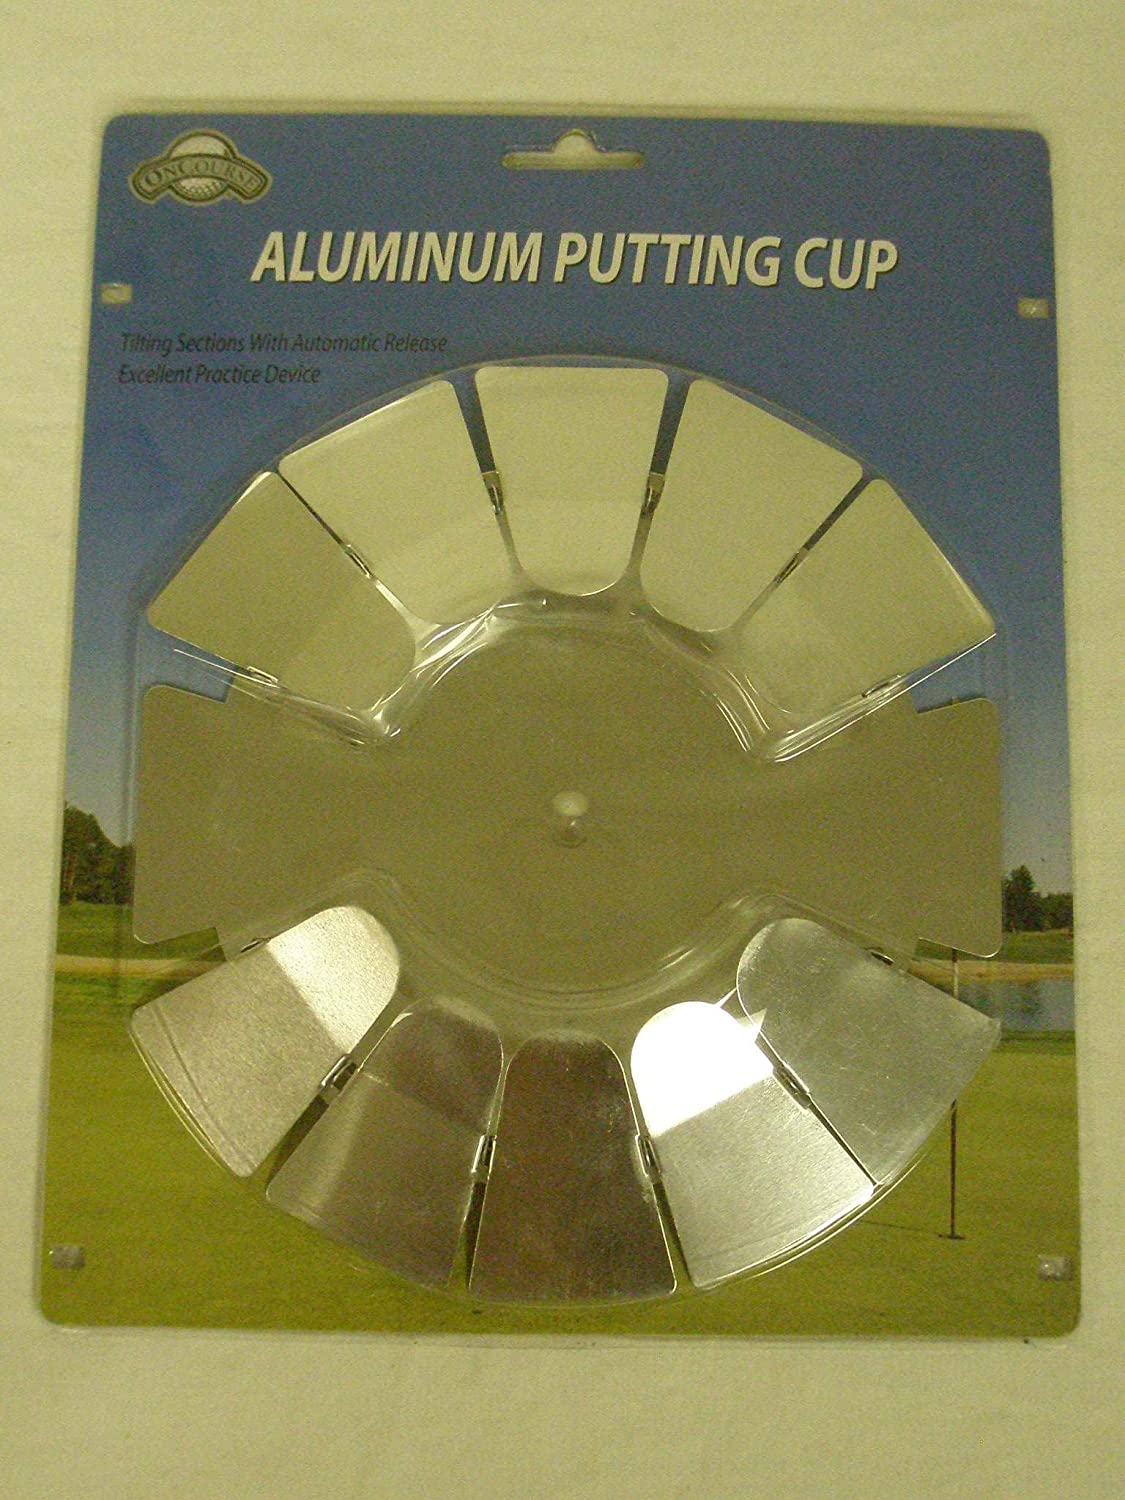 On Course Aluminum Putting Cup Putting Aid RH or LH